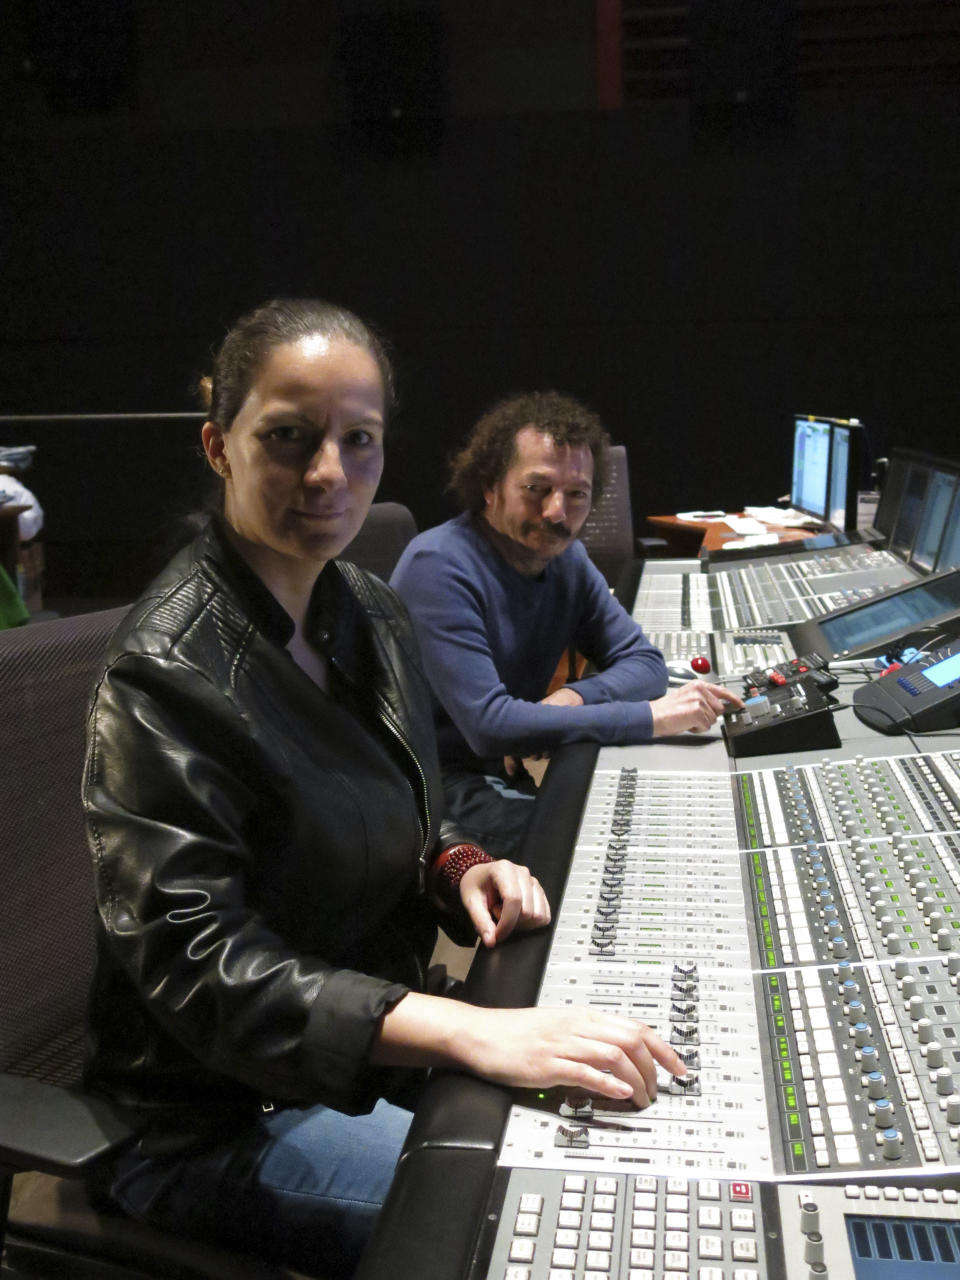 """Mexican sound engineers Michelle Couttolenc, left, and Jaime Baksht pose in a sound studio in Mexico City, March 18, 2021. The Oscar-nominated movie """"Sound of Metal,"""" about a heavy metal drummer that starts going deaf, has three Mexican sound engineers nominated for best sound, Couttolenc and Baksht. (AP Photo/Berenice Bautista)"""